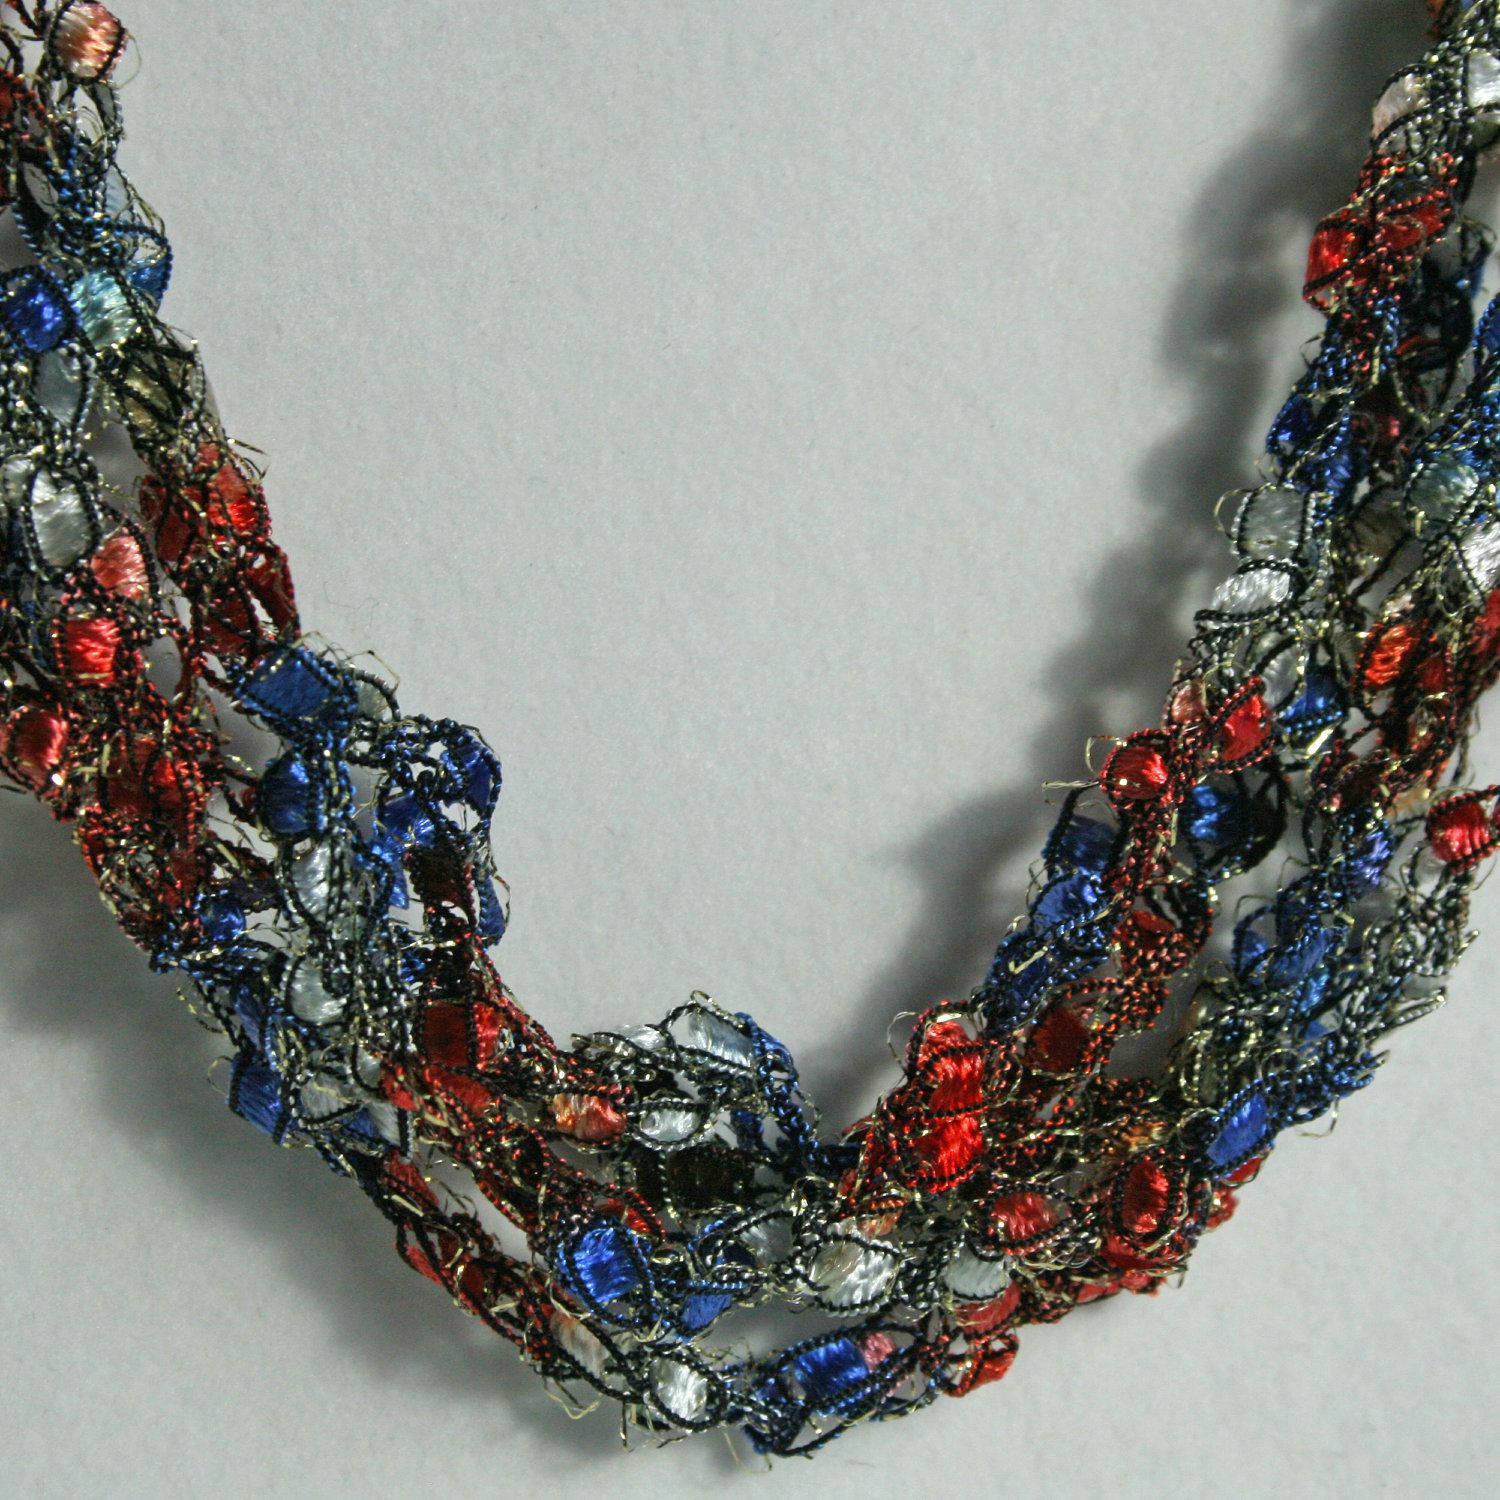 SALE  America - Crocheted Necklace. $8.00, via Etsy.